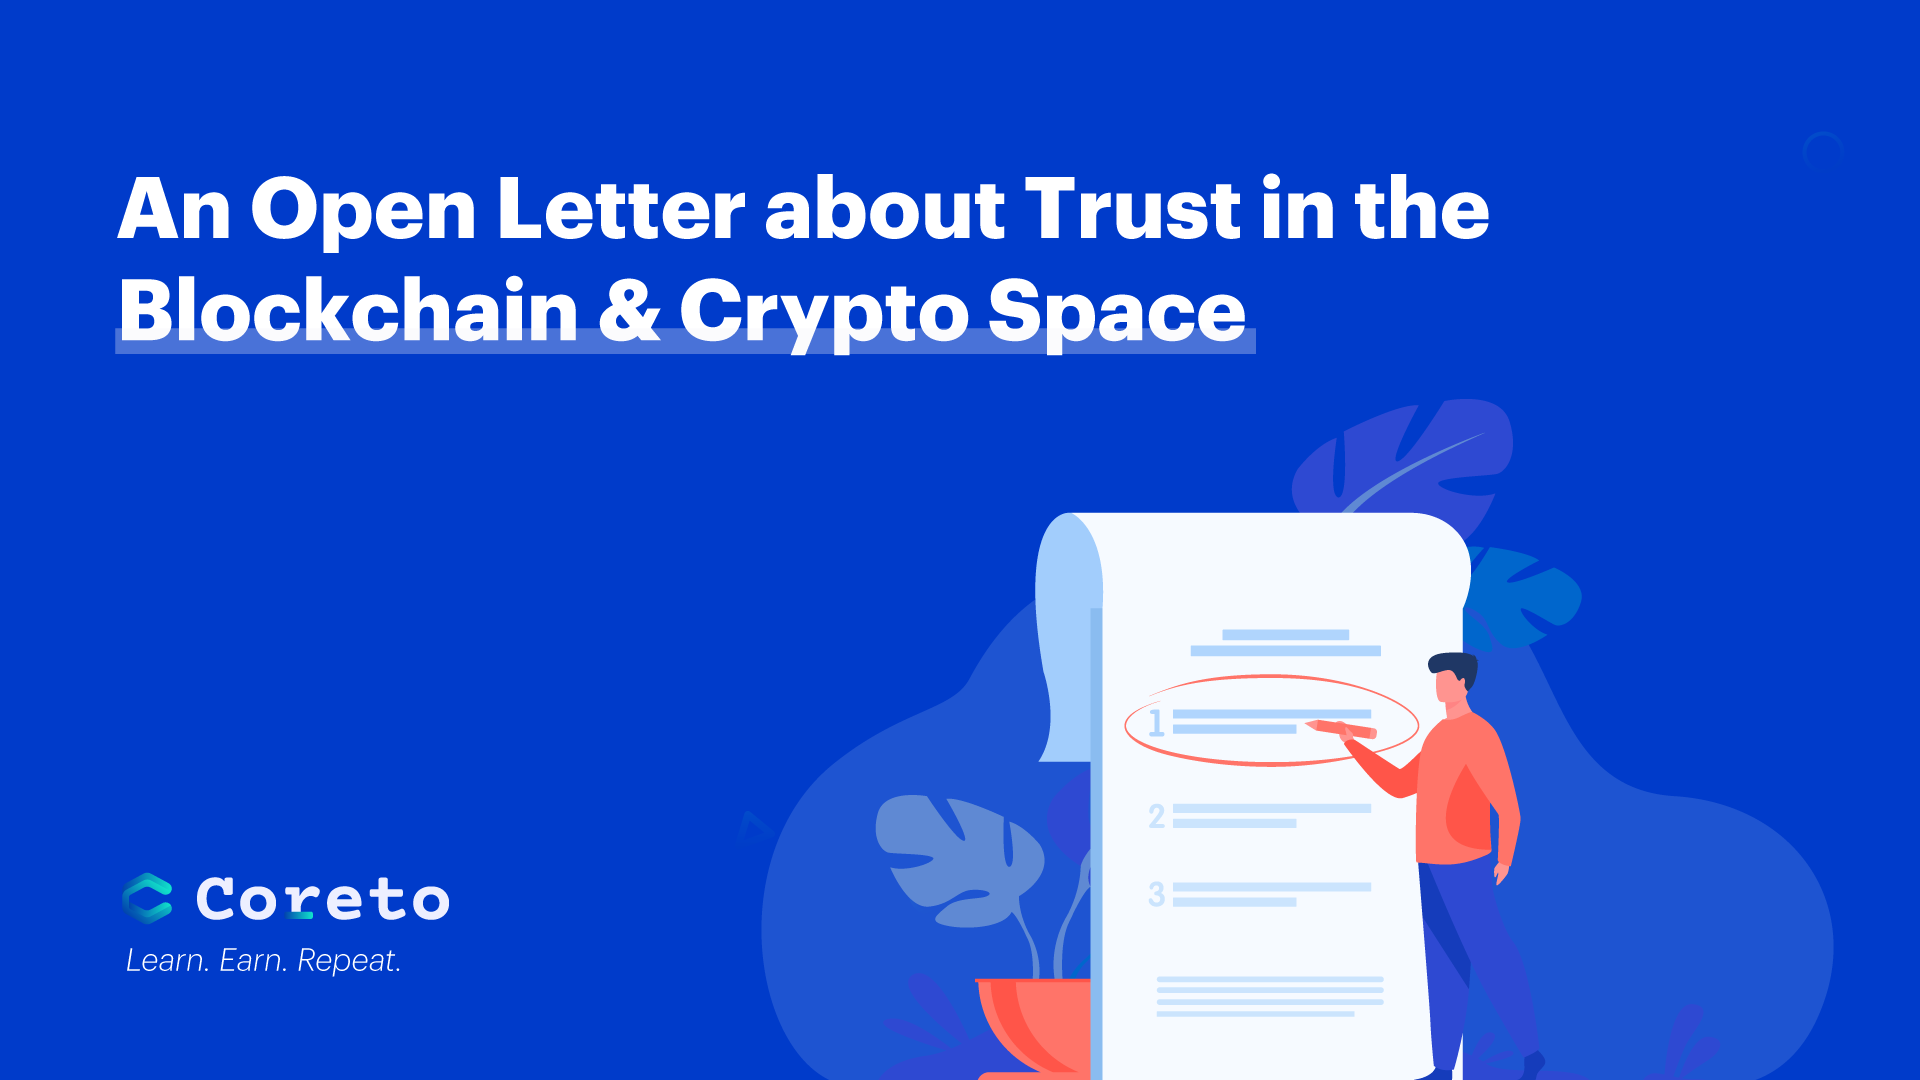 An Open Letter about Trust in the Blockchain & Crypto Space